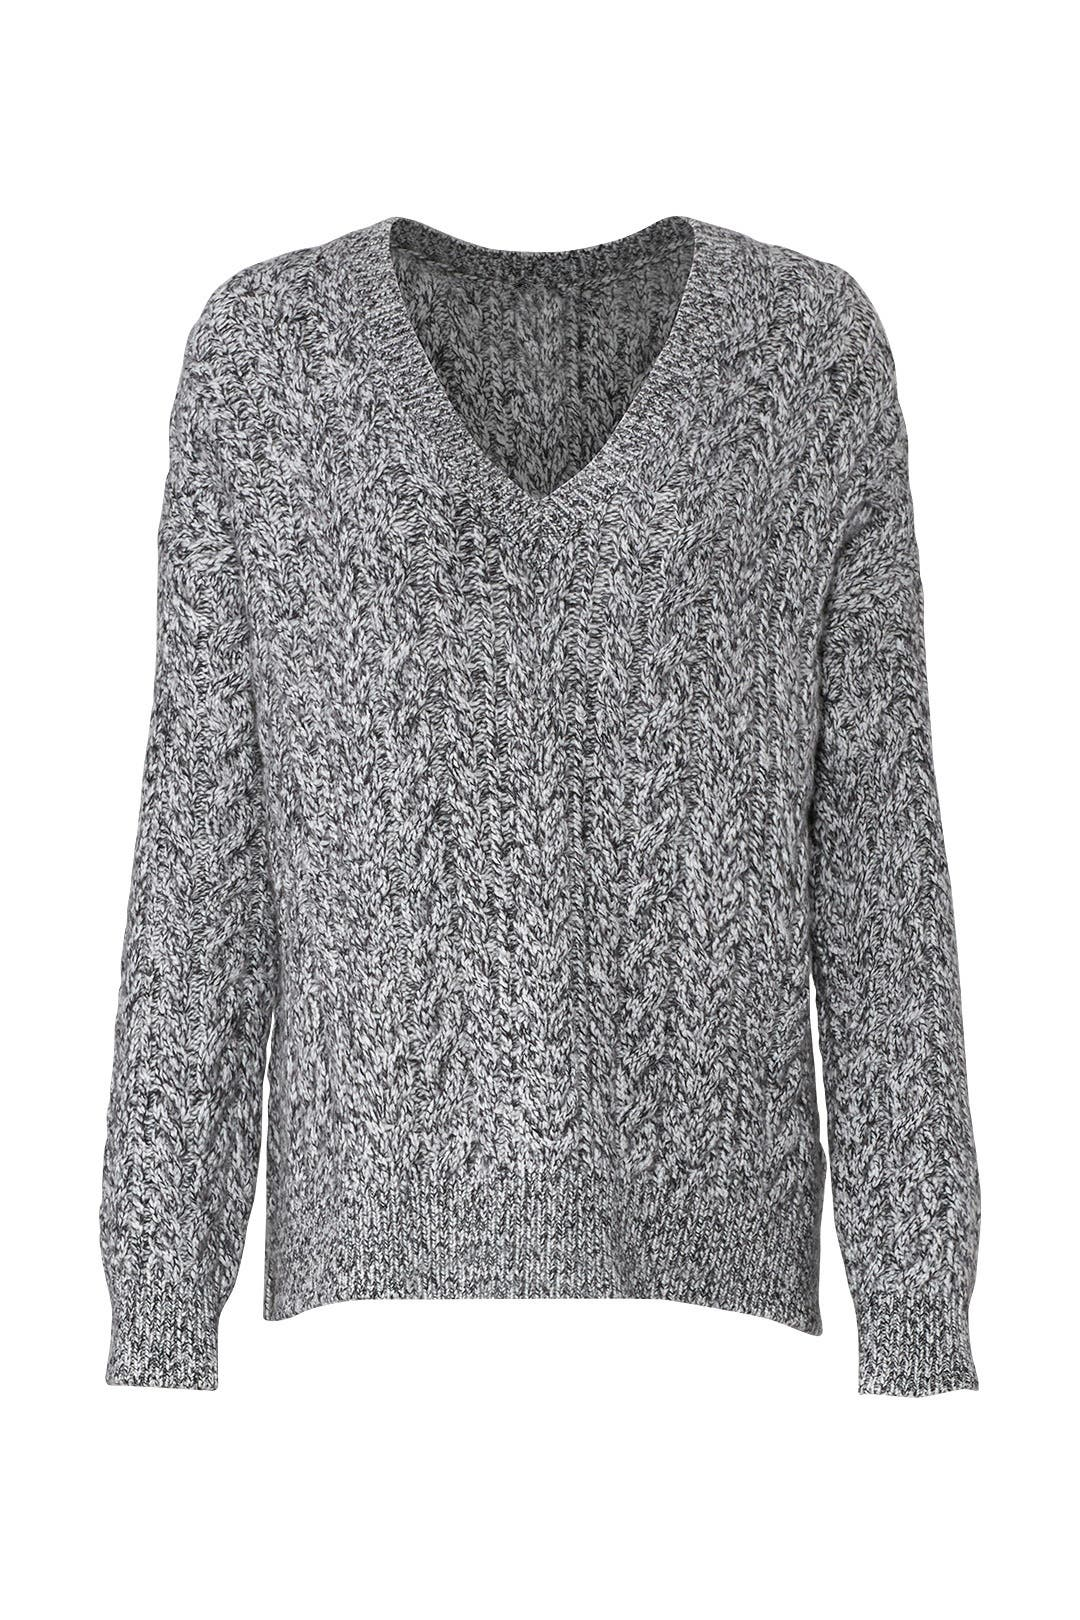 d3f592028d85 Grey Cable Sweater by VINCE. for  65